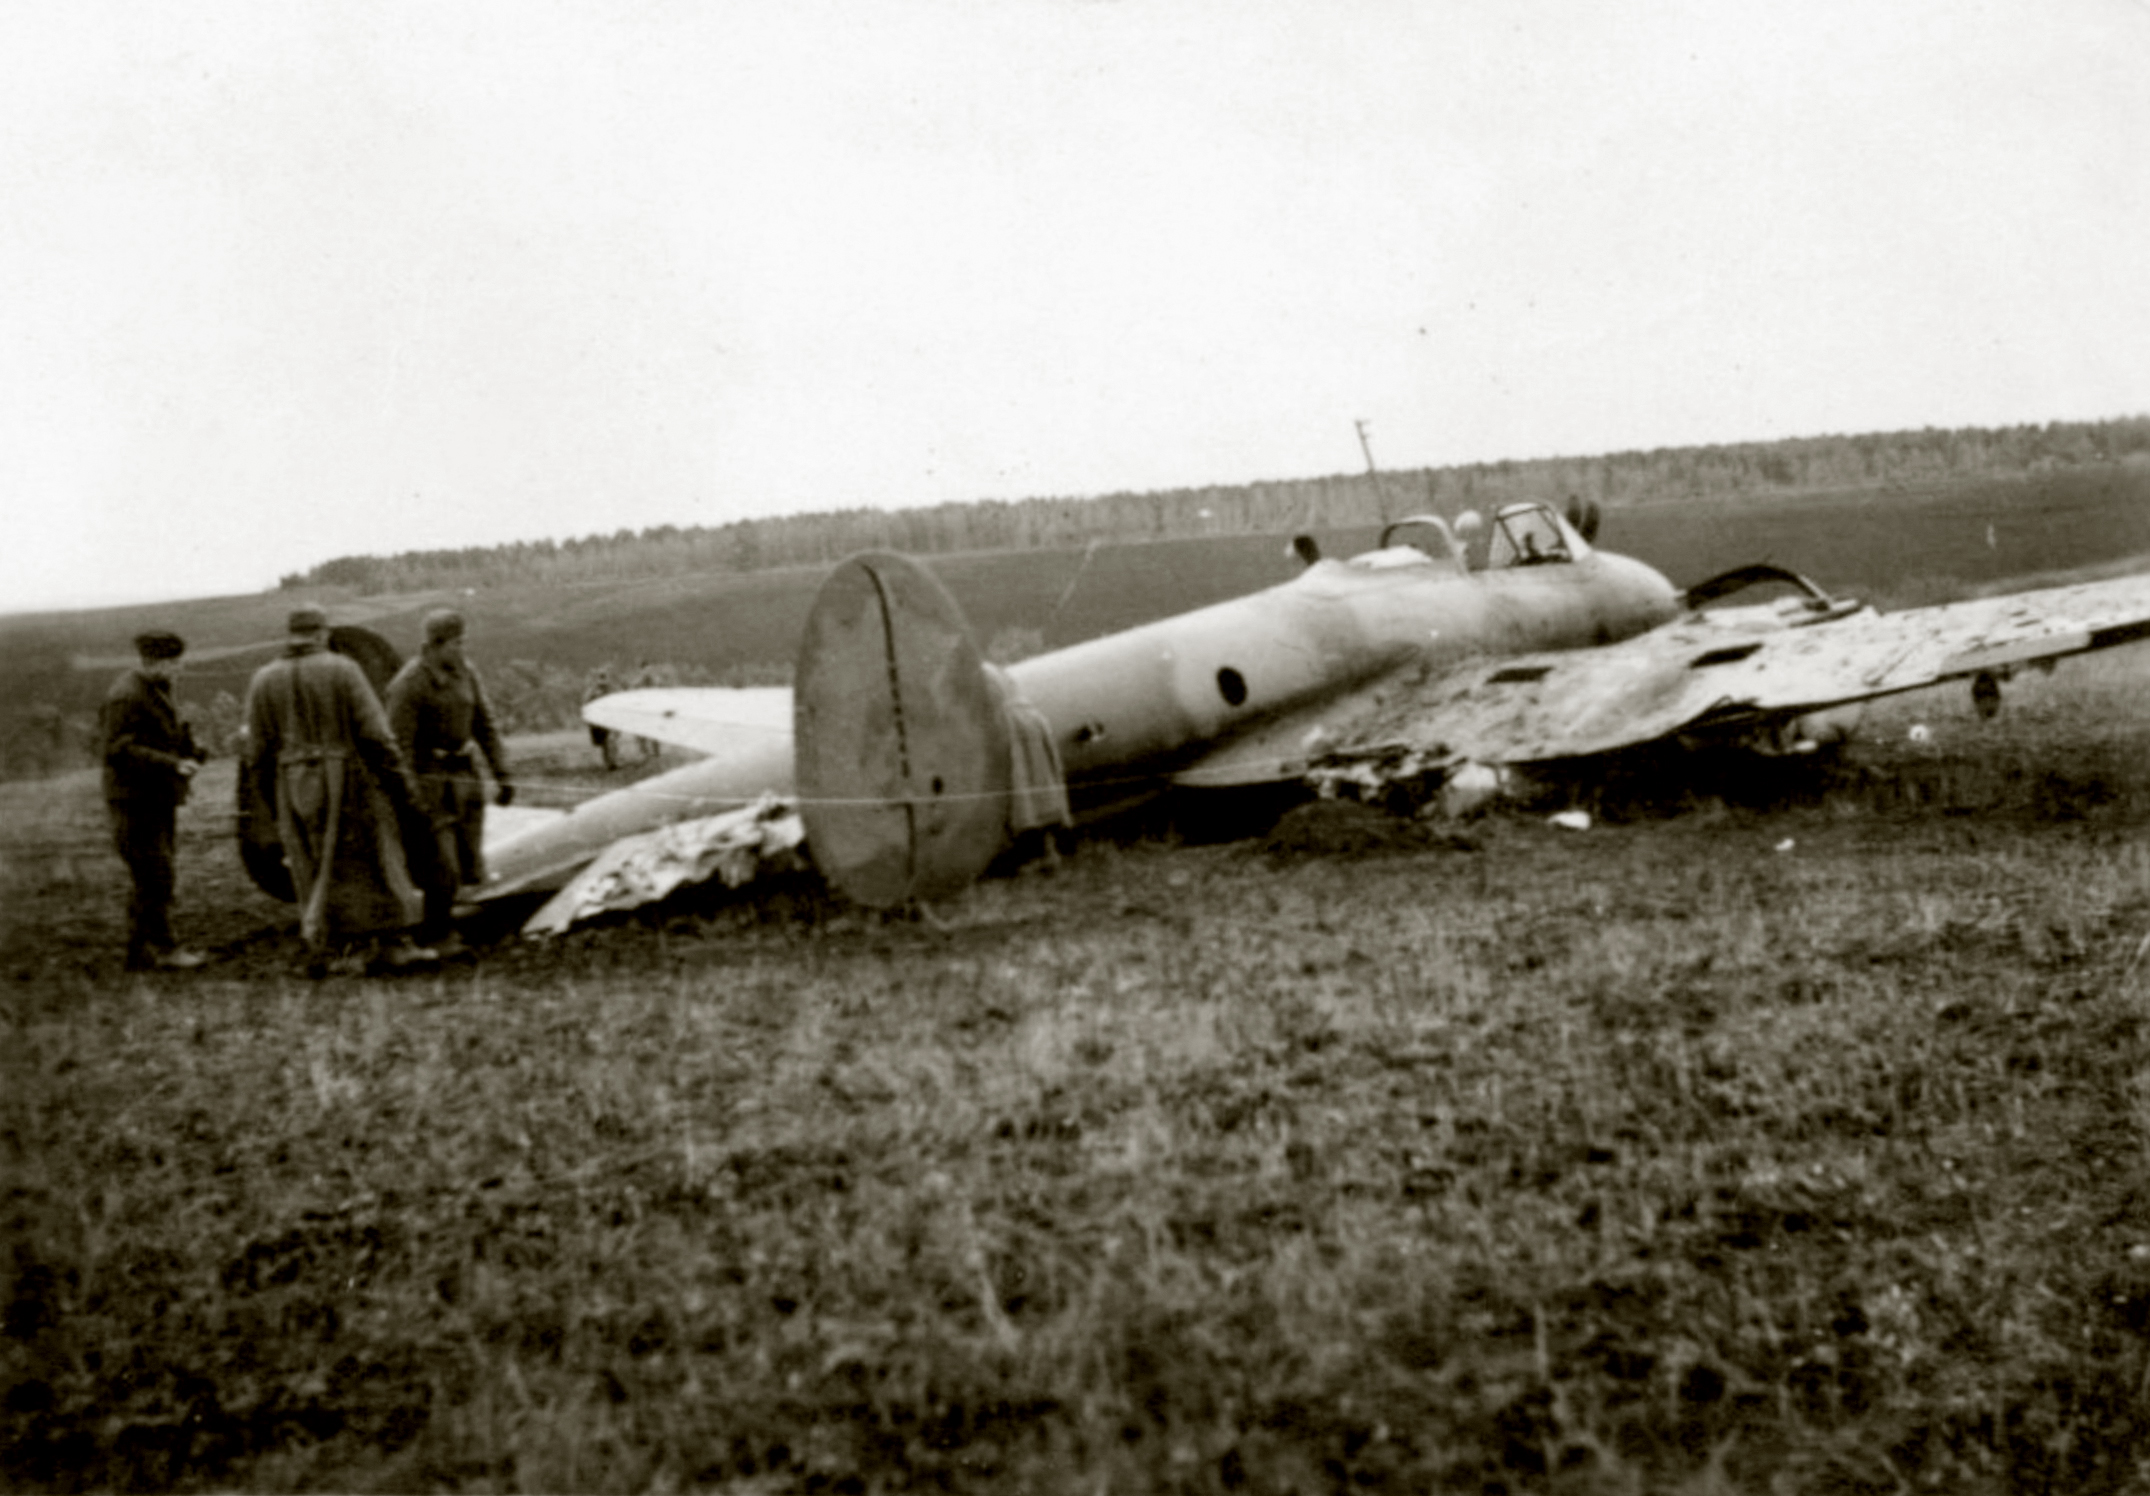 Petlyakov Pe 3 belly landed being inspected by German forces Operation Barbarosa Russia 1941 ebay 01